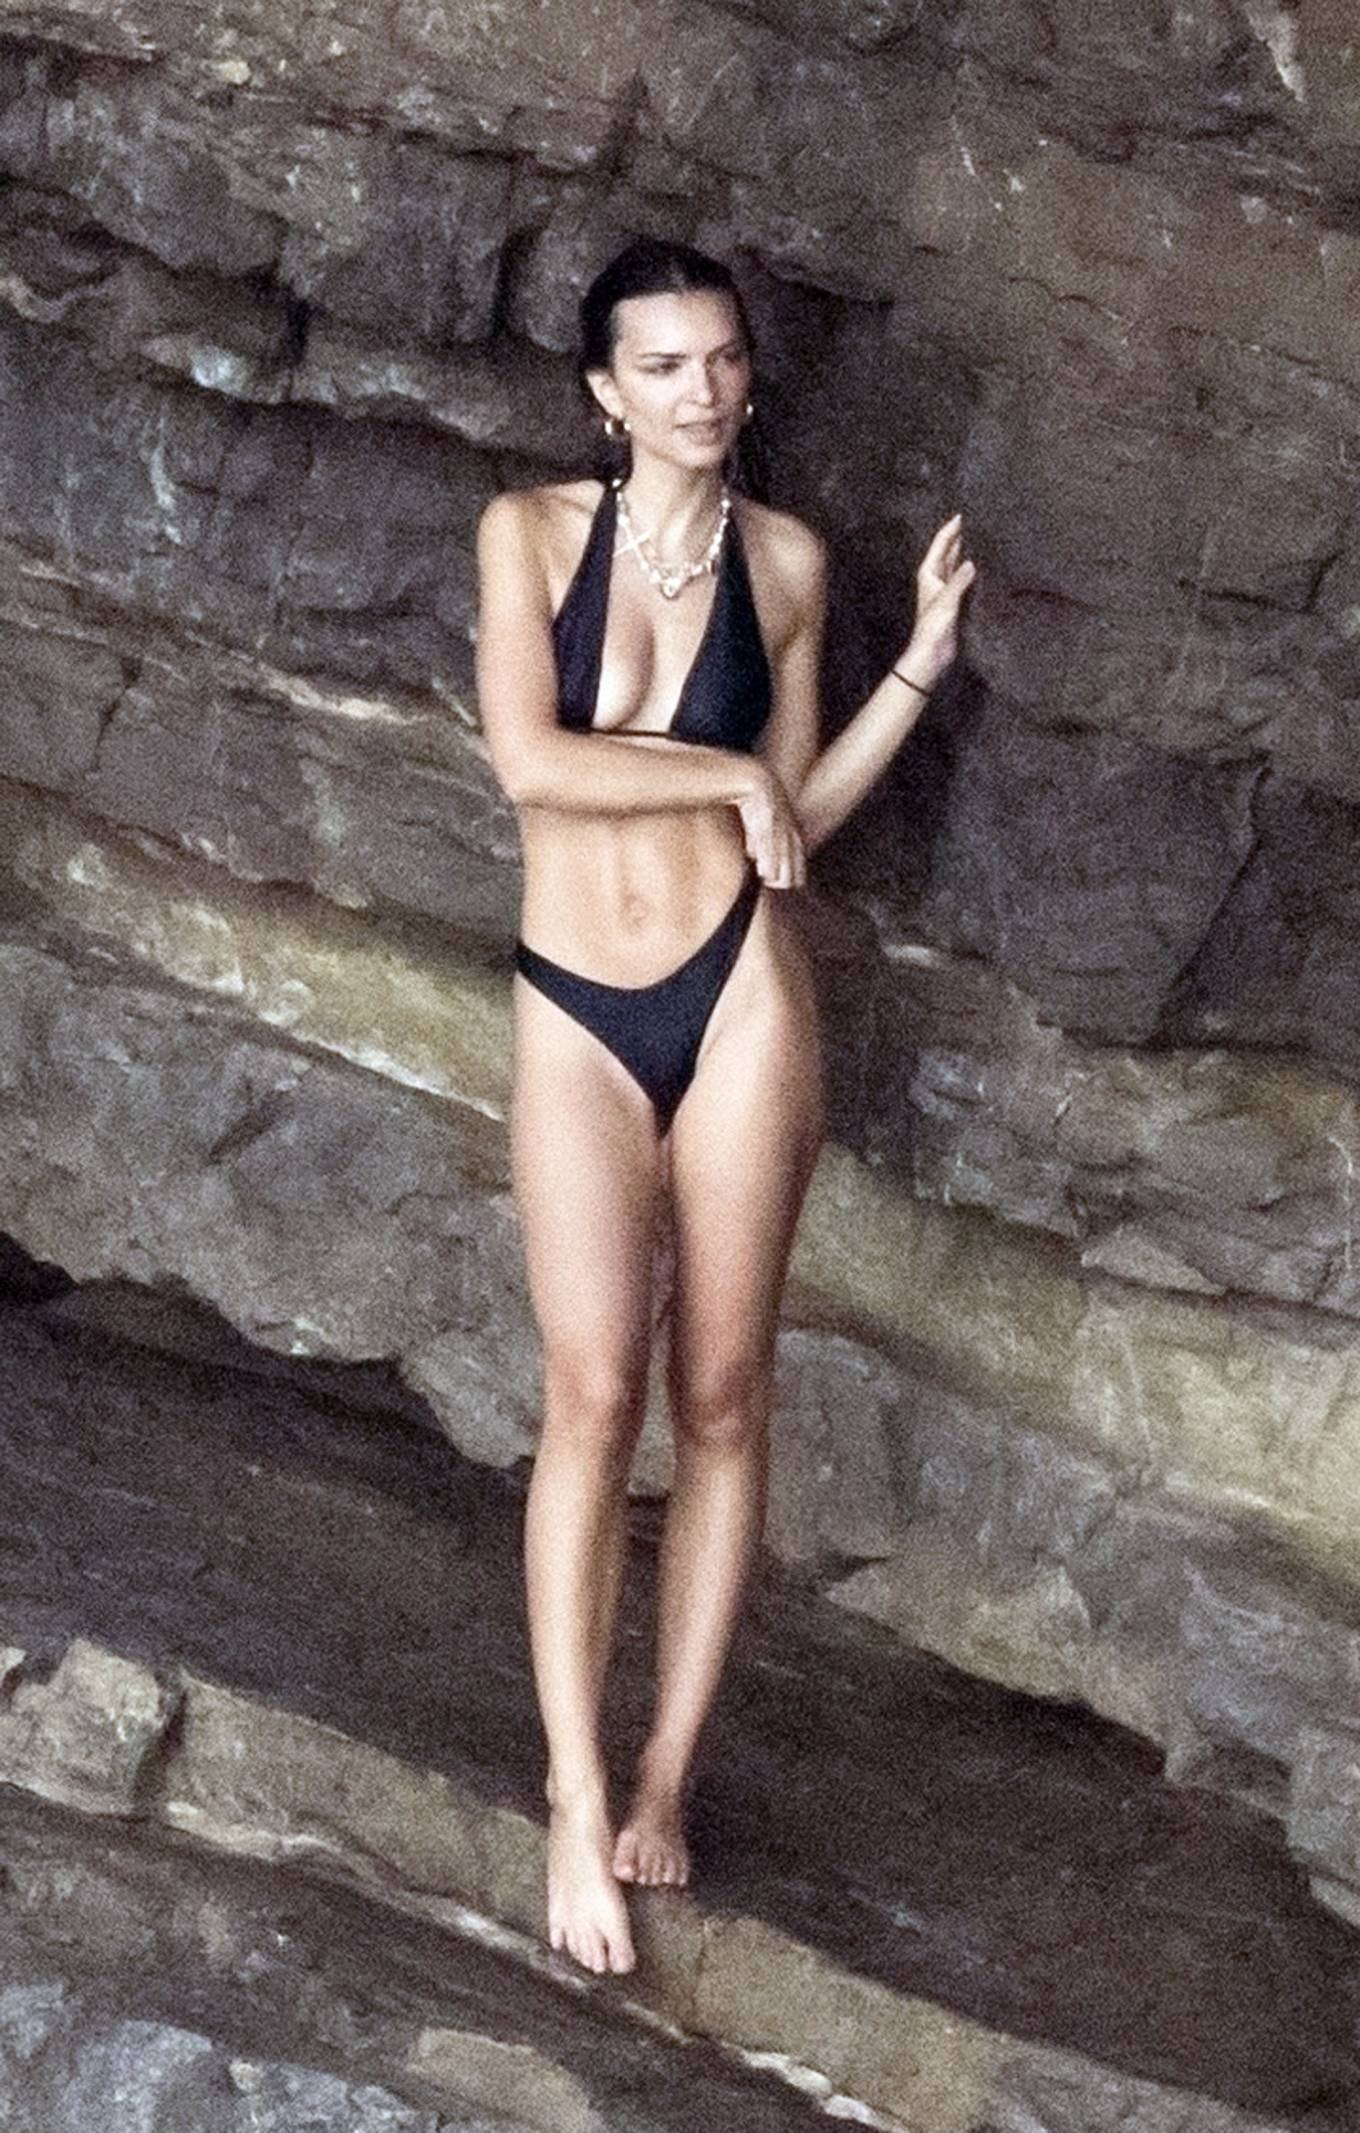 Emily Ratajkowski rocking a skimpy black bikini top with tie back, a halter neck and two ties at the shoulder